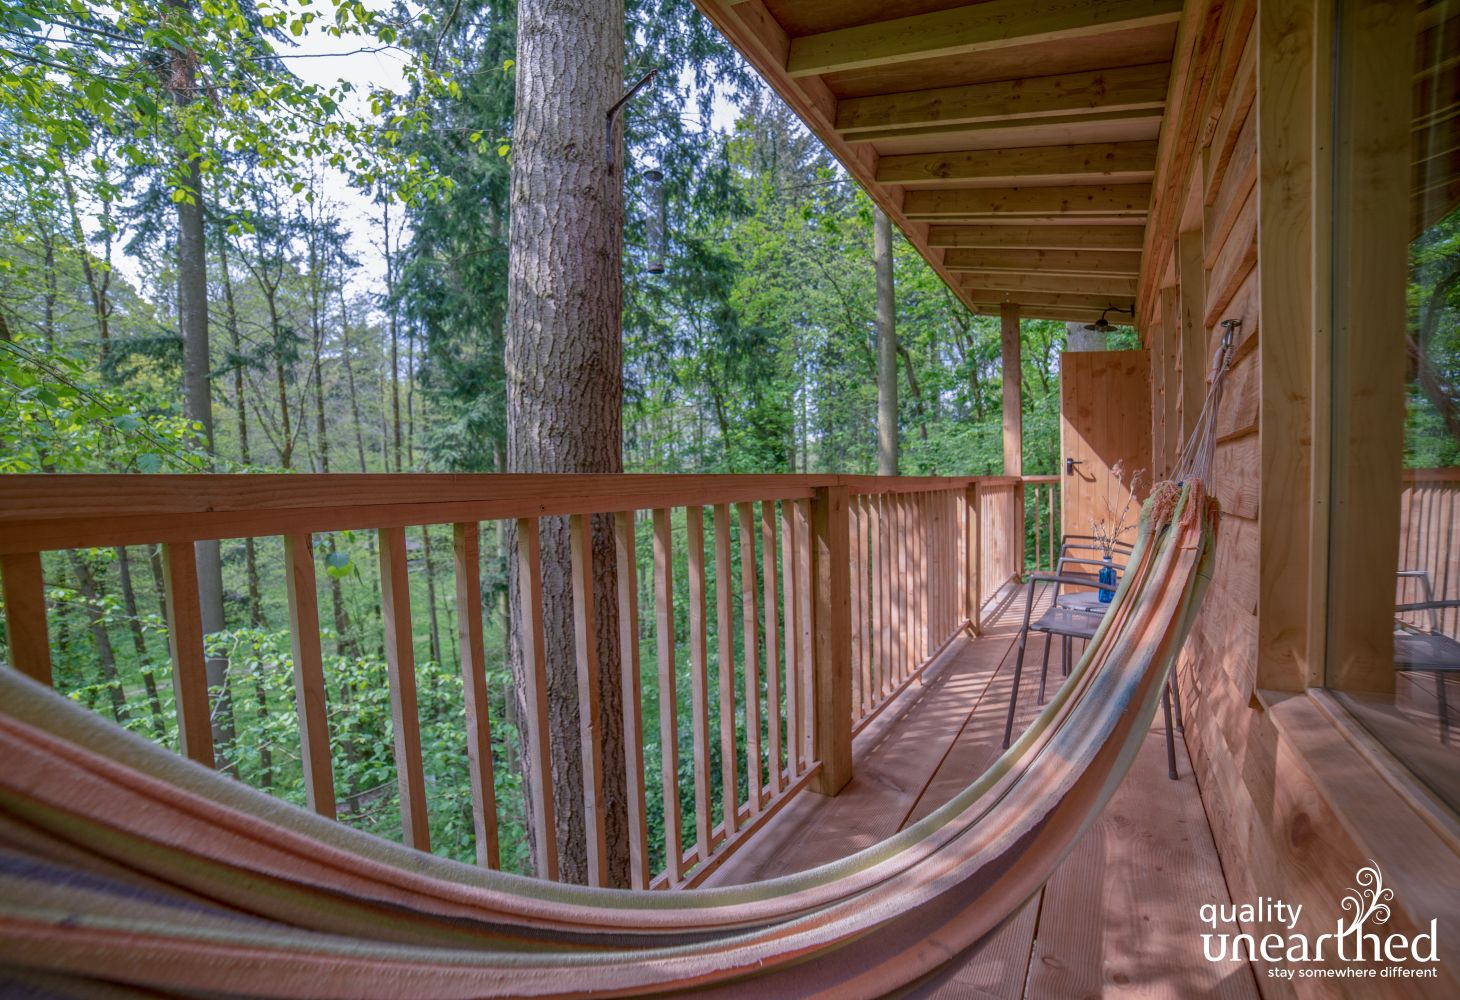 A full size hammock on the terrace of the wooden cabin